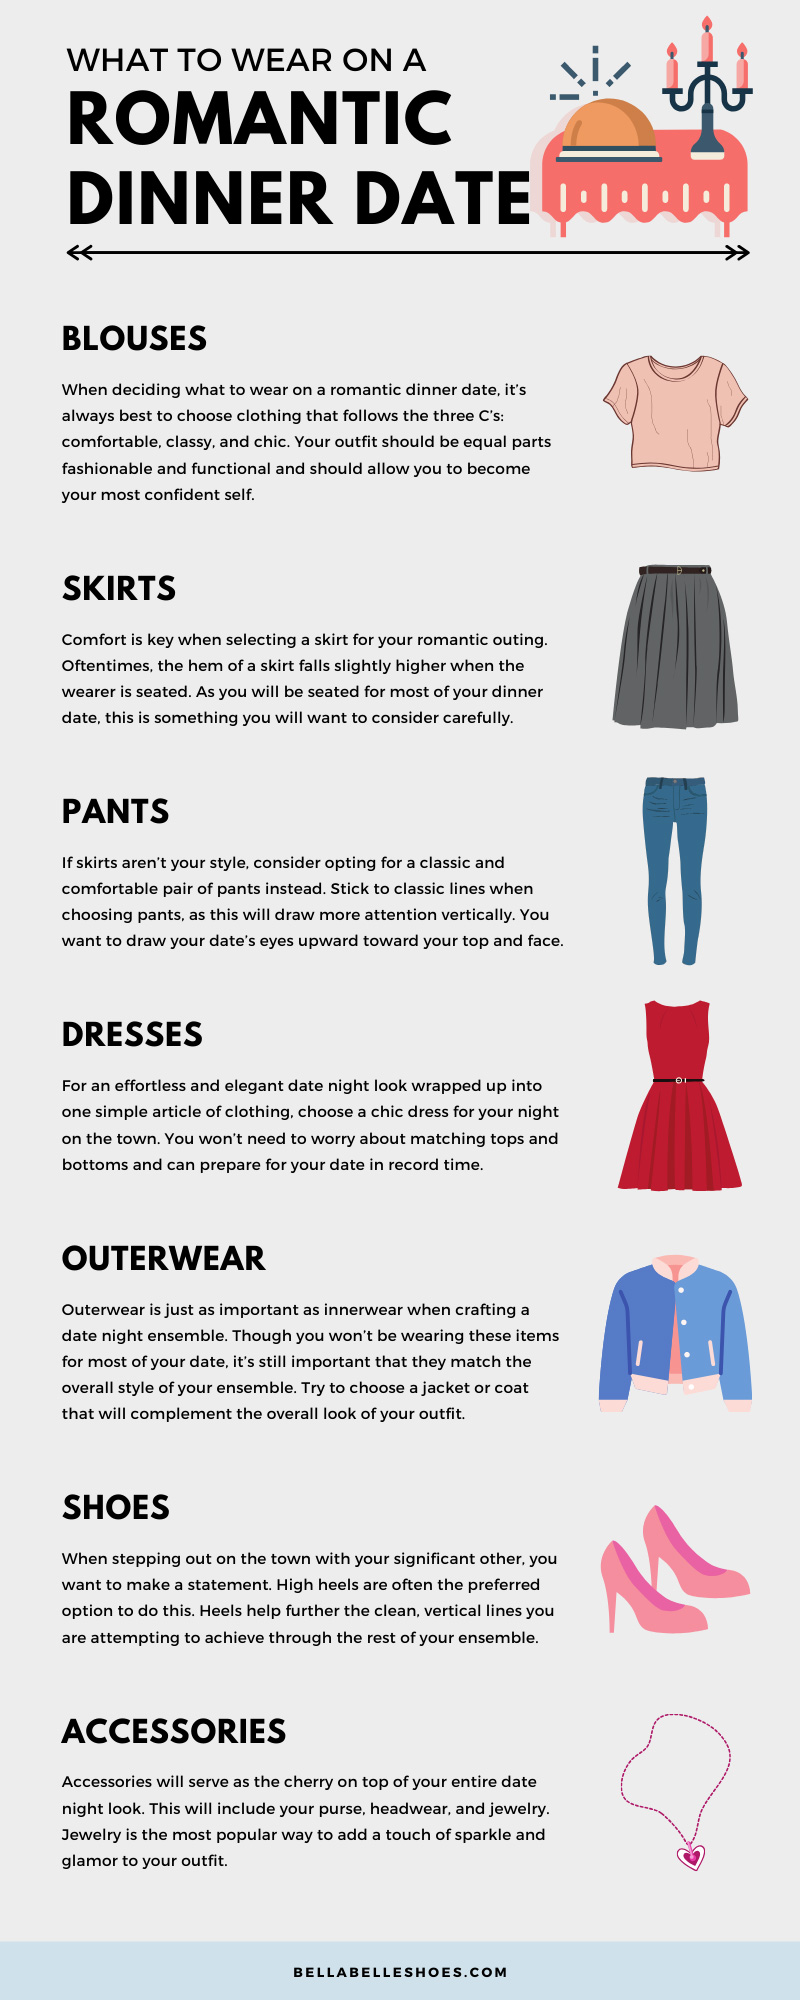 What to Wear on a Romantic Dinner